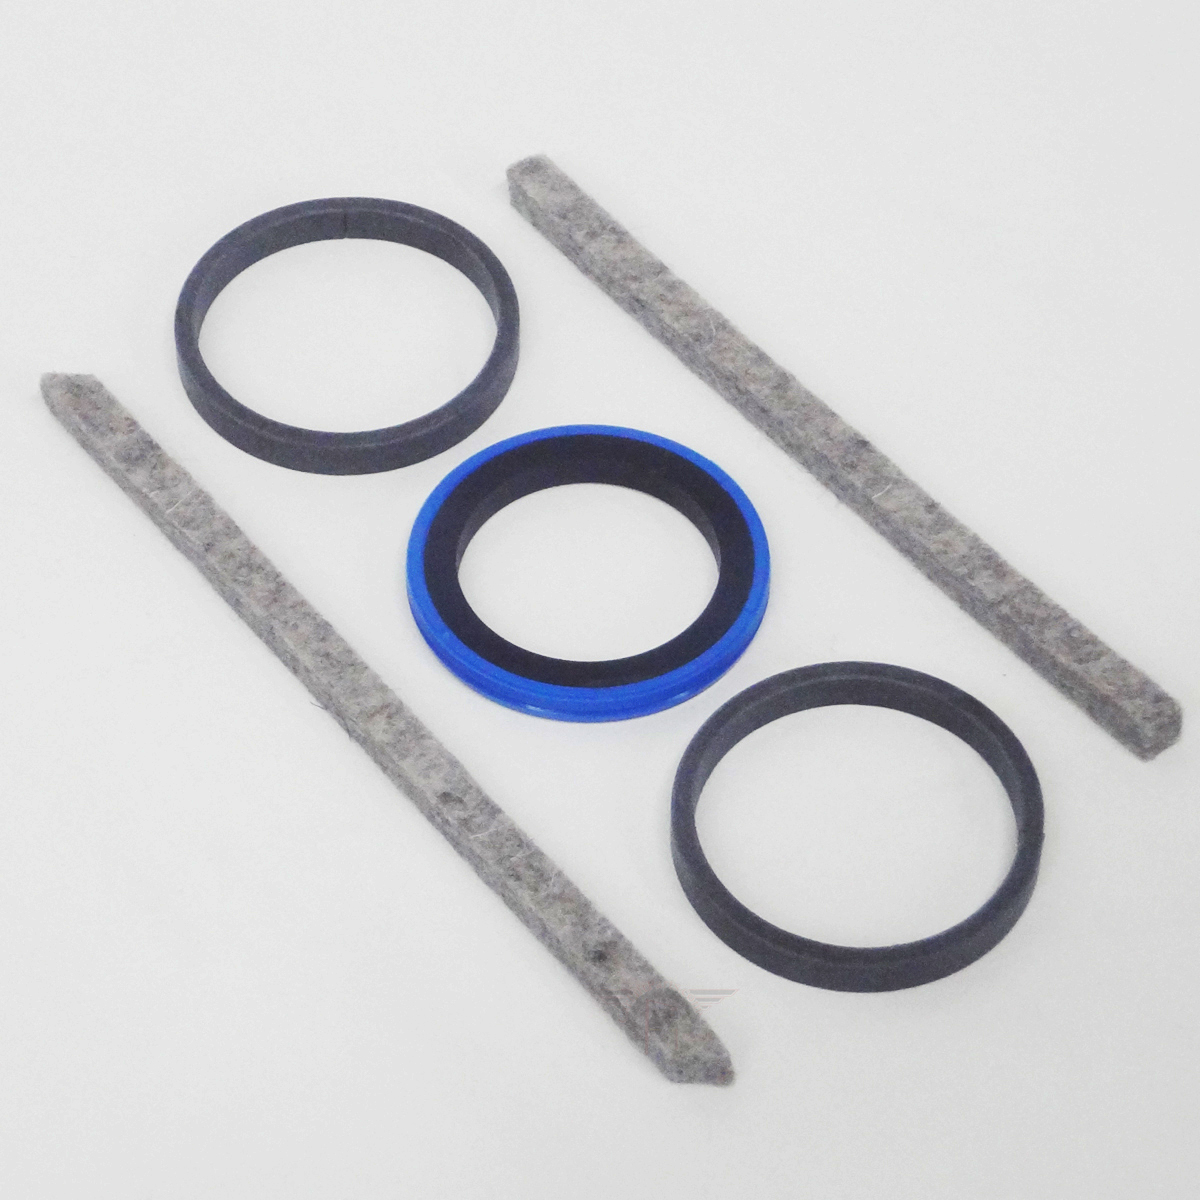 Hydraulic Lift Cylinder Repair : Ben pearson lift cylinder rebuild kit seal pacoma